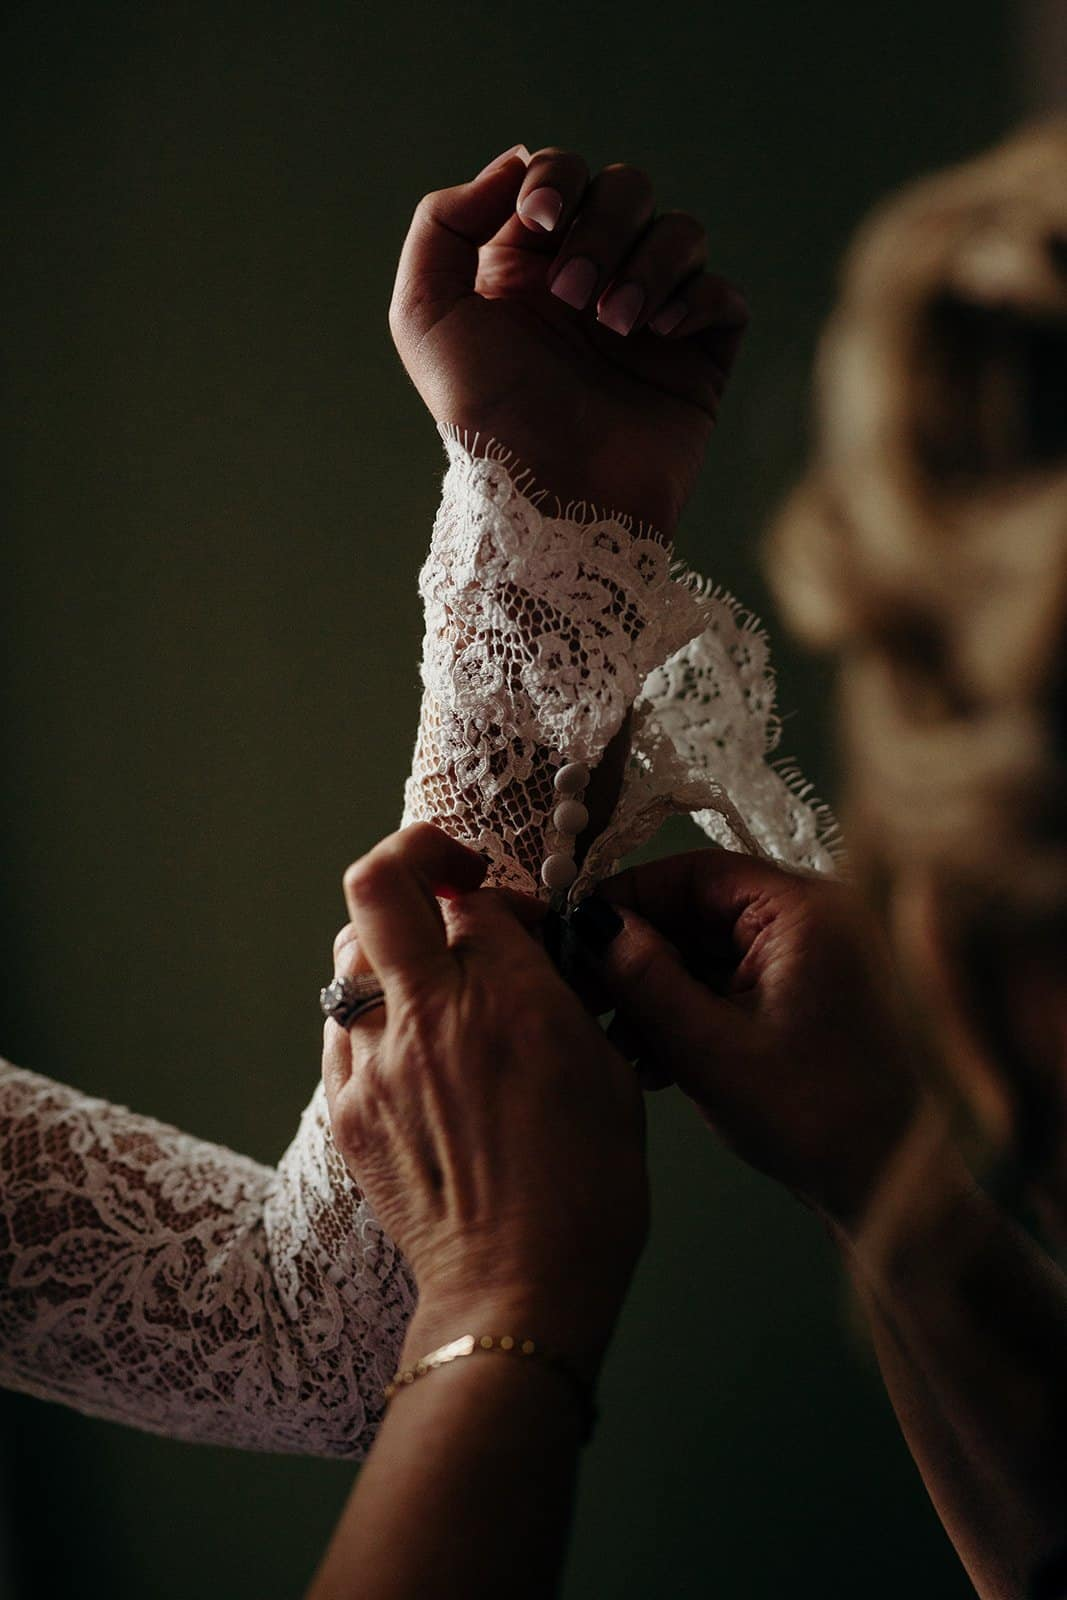 Woman helping bride put on jewelry